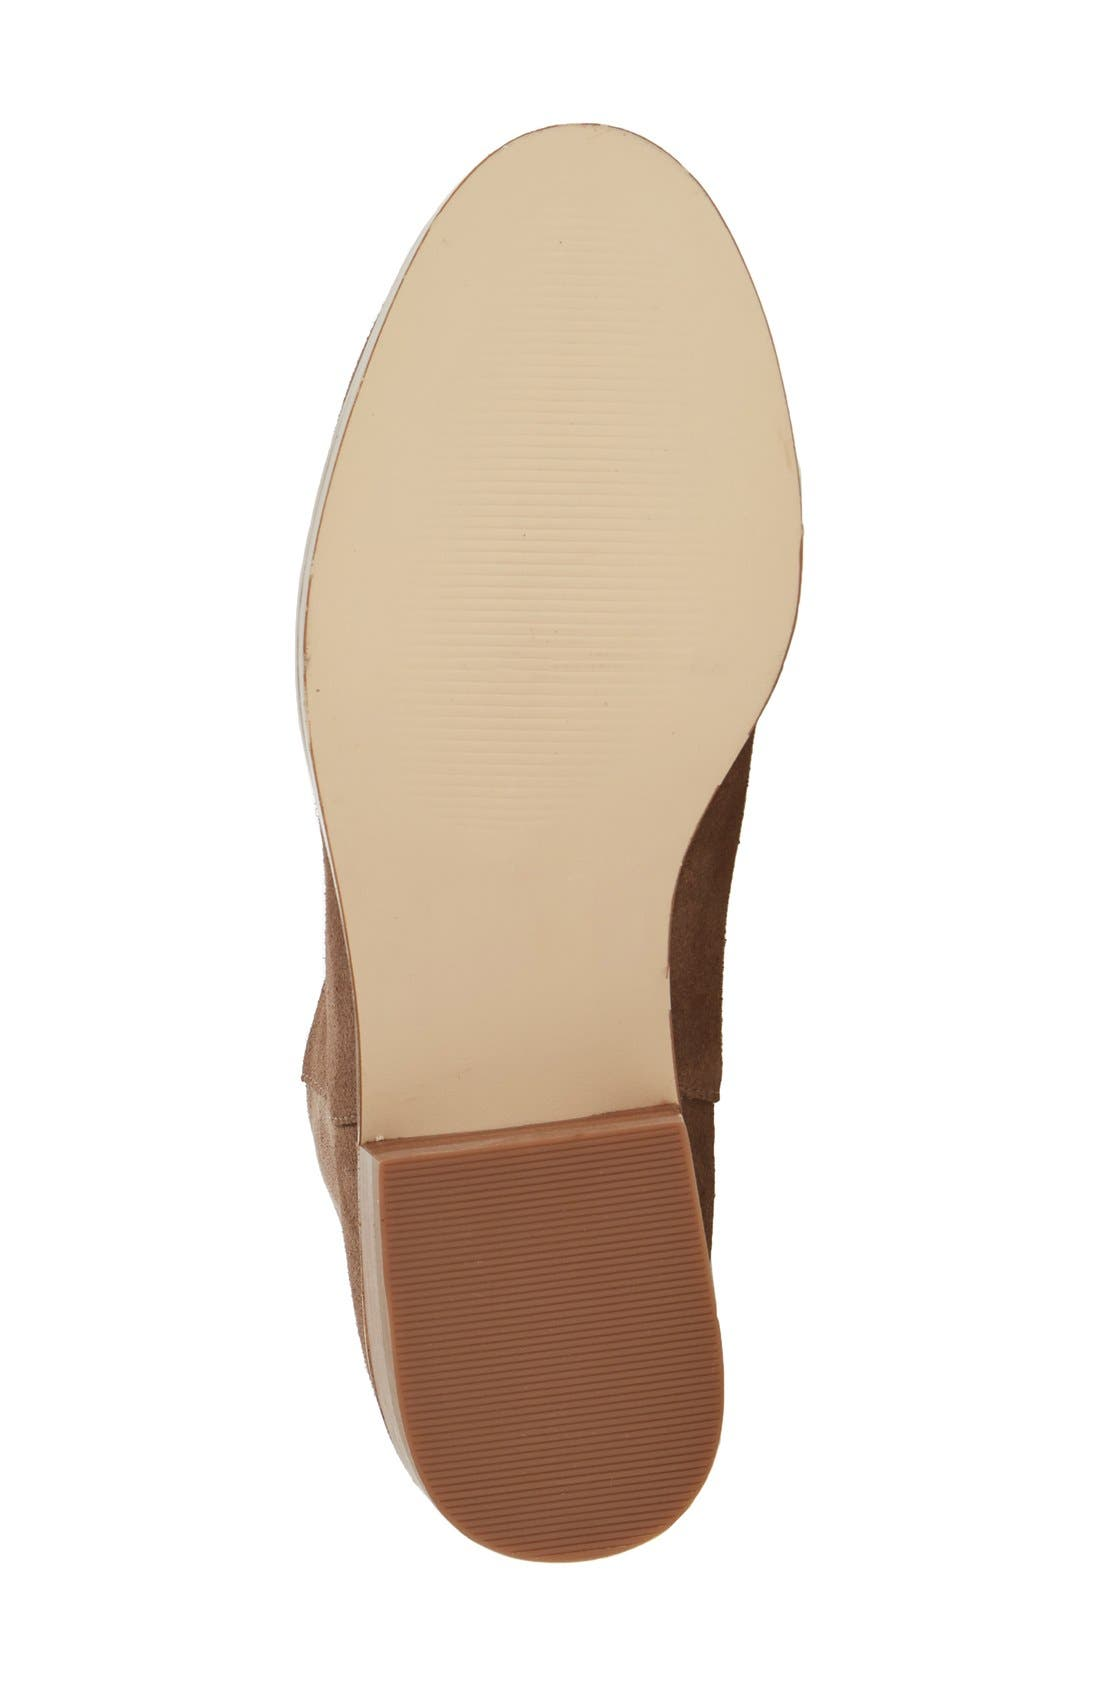 Calypso Over the Knee Boot,                             Alternate thumbnail 4, color,                             Taupe Suede